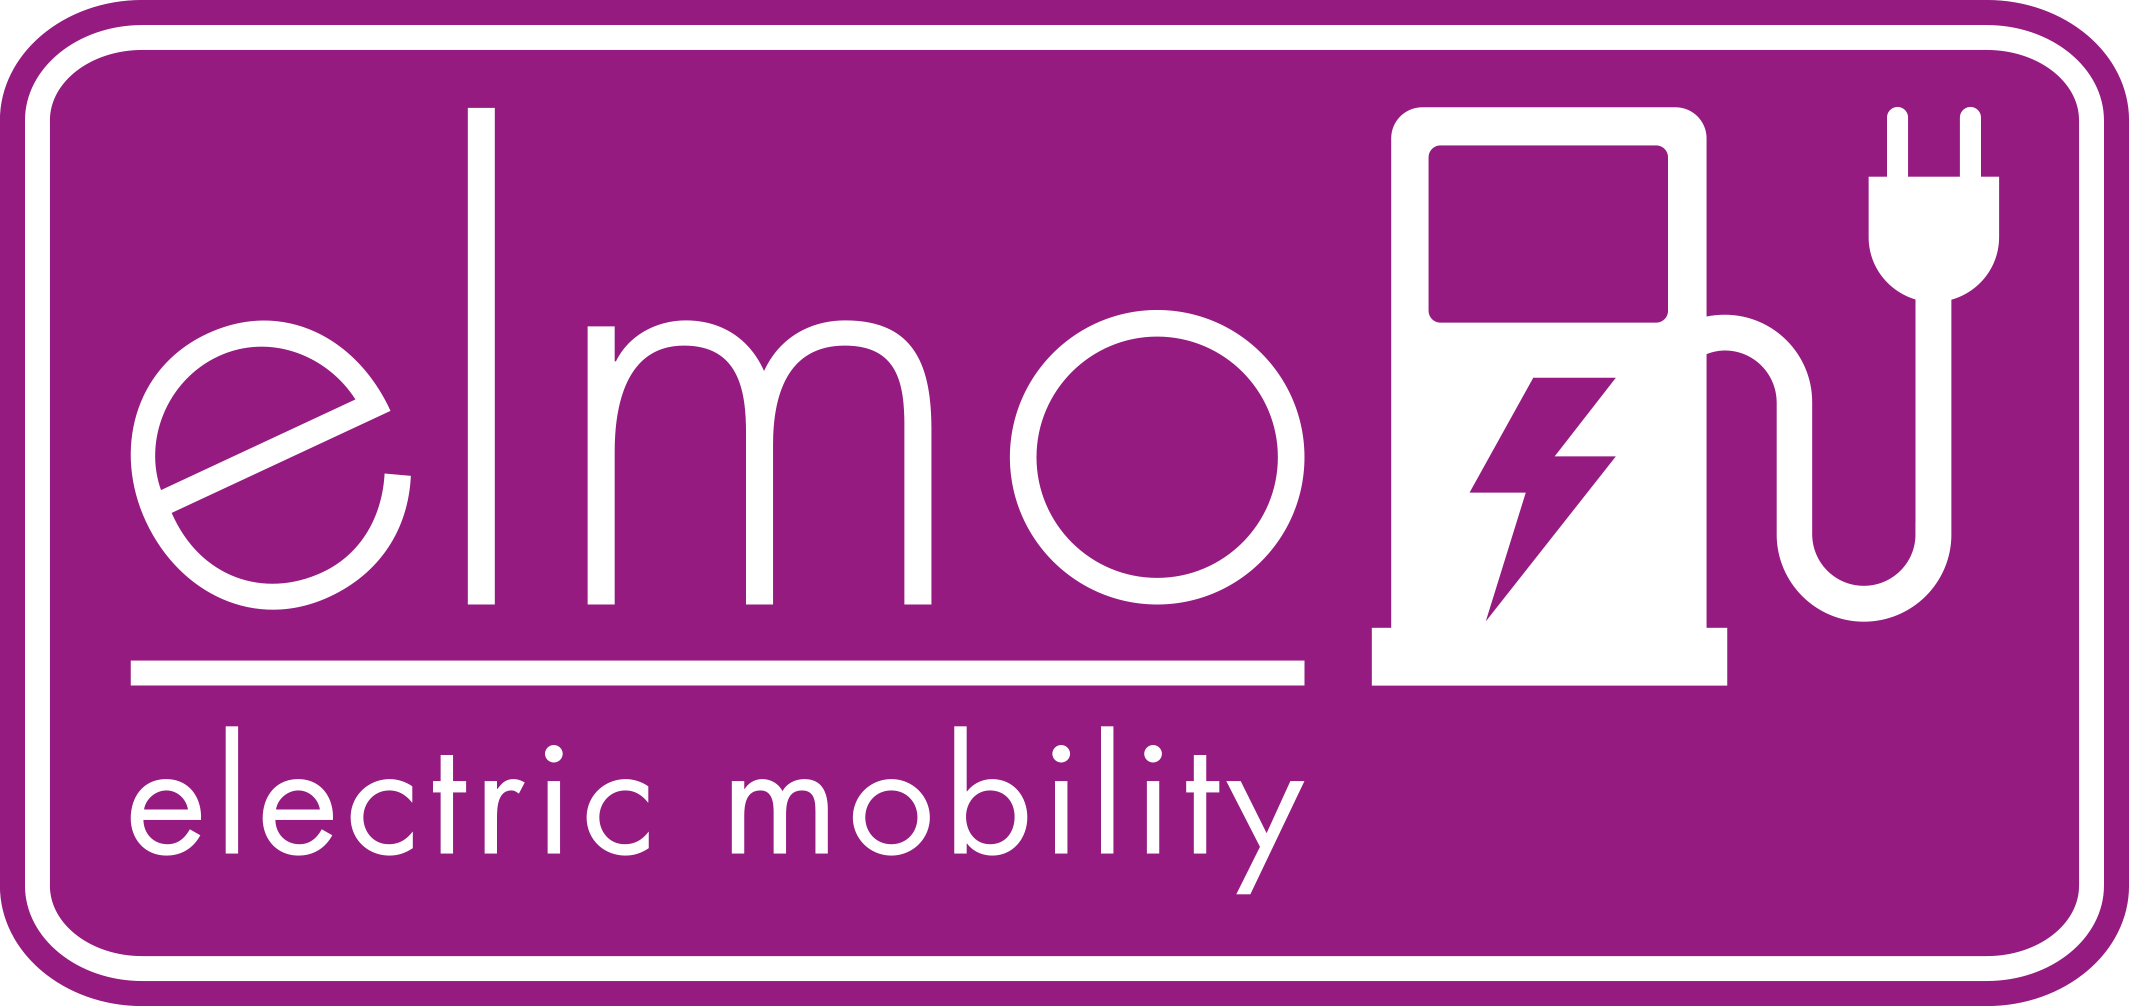 elmo - electric mobility-Logo